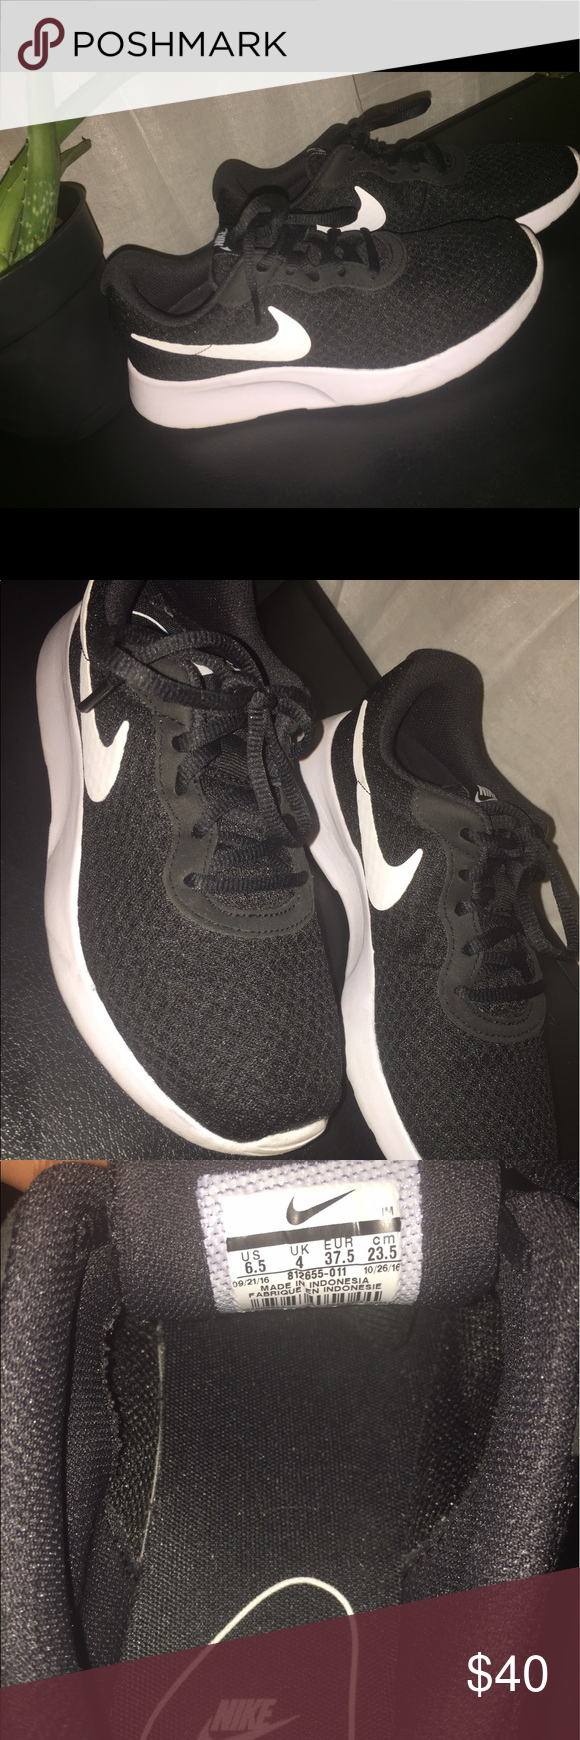 Nike sneaker Black and white Nike Women's Tanjun athletic sneaker. Great condition. Size 6.5. Super comfortable. Nike Shoes Athletic Shoes